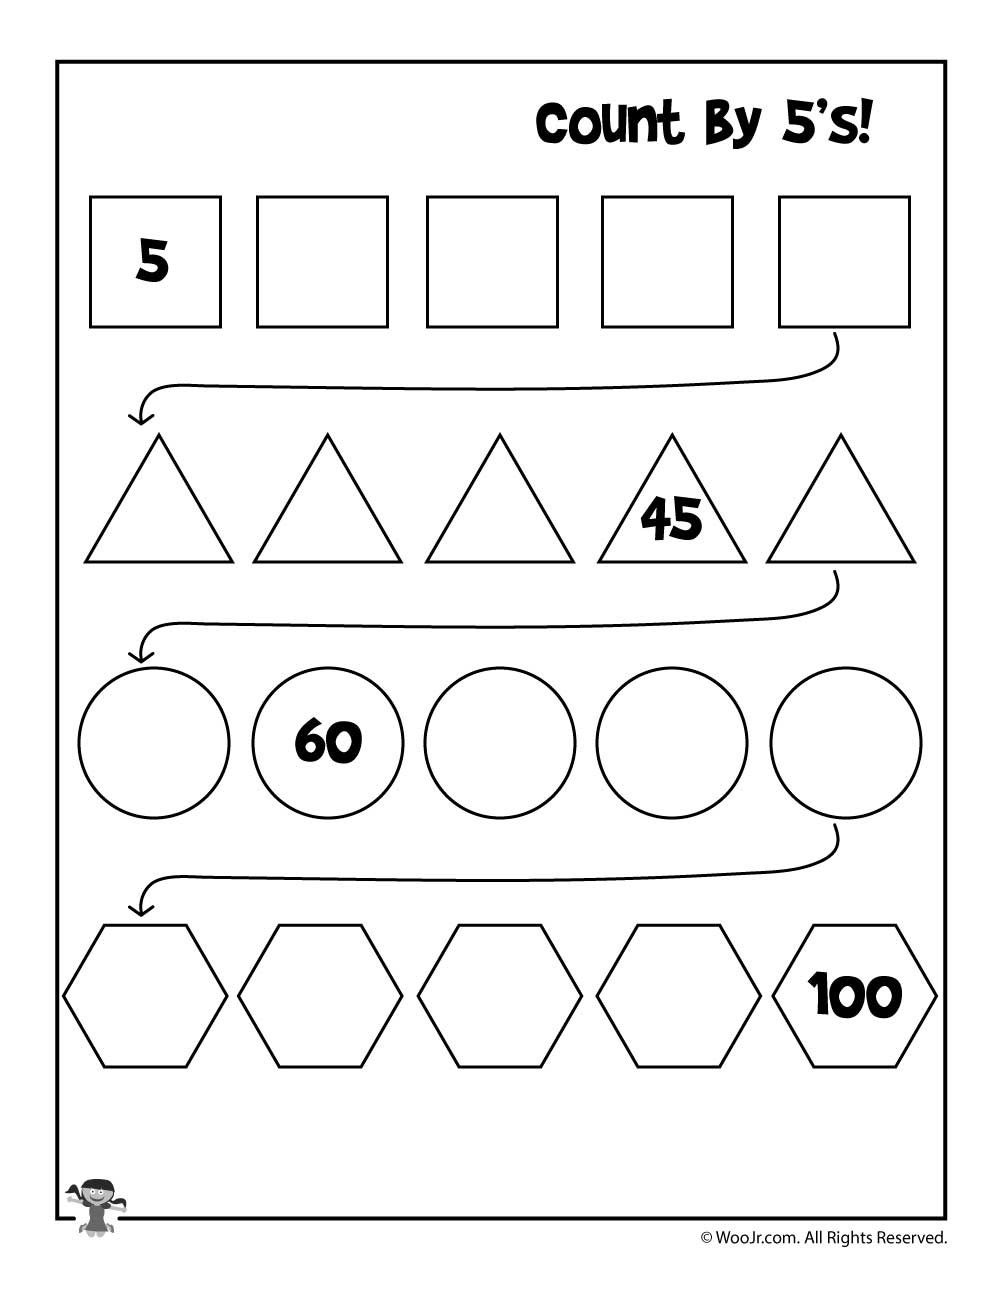 Pin By Irina Gaiduk On Math K In 2020 Skip Counting Worksheets Counting Worksheets Kindergarten Worksheets Printable